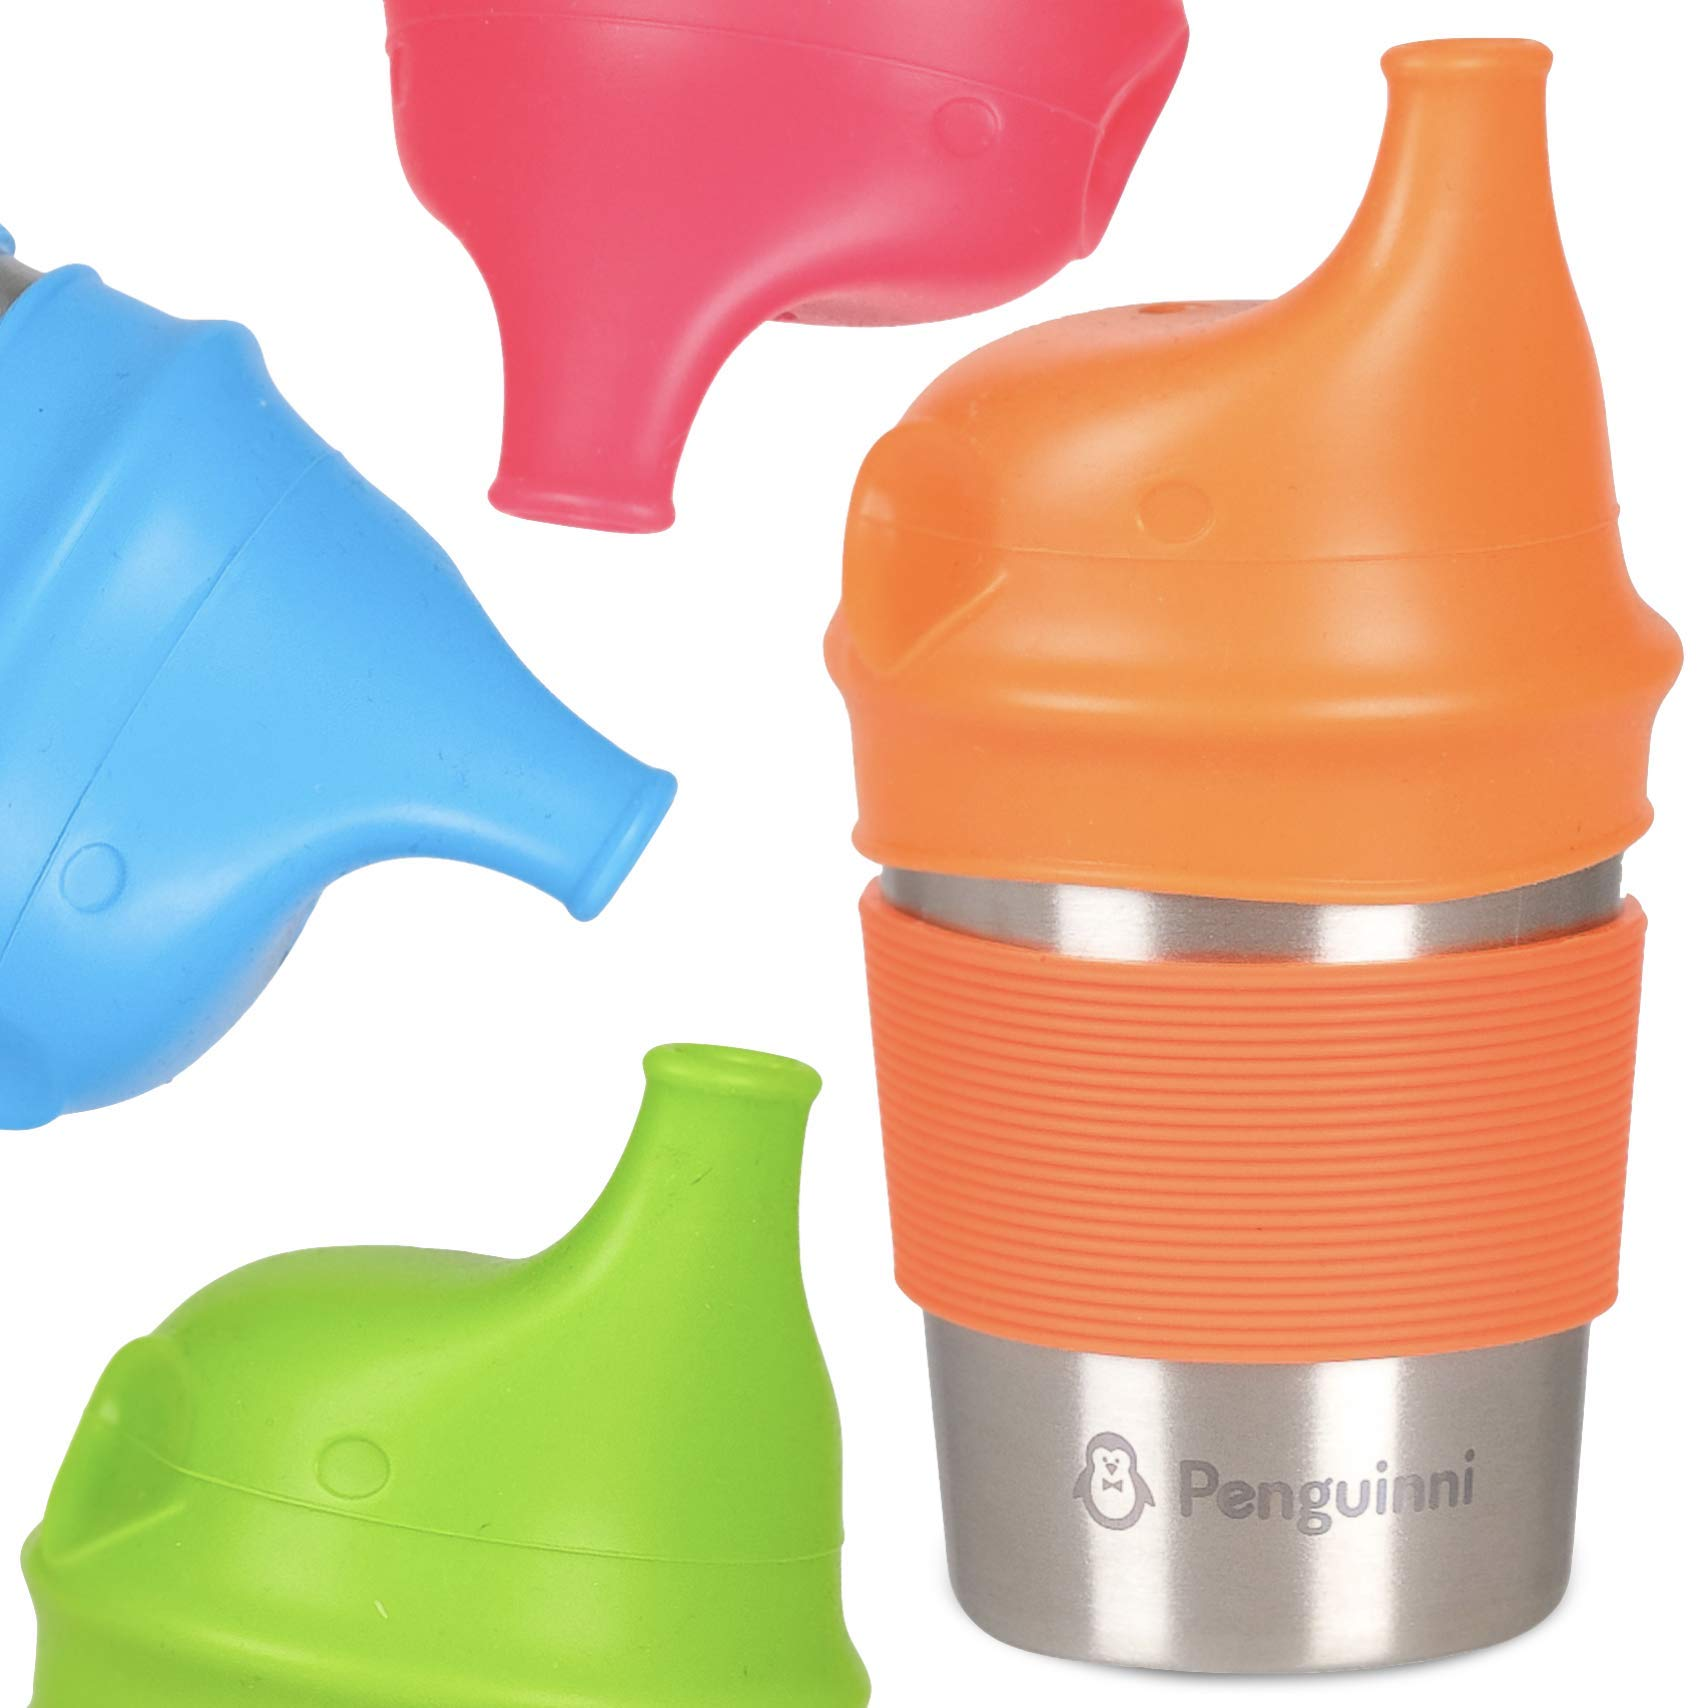 Stainless Steel Sippy Cup with Silicone Lids by Penguinni - 8oz Cups - 4 Pack - Spill Proof and No Leaks - Non Plastic and BPA Free - Non Spill Sippy Cups For Toddlers Kids - FREE Lid Replacements